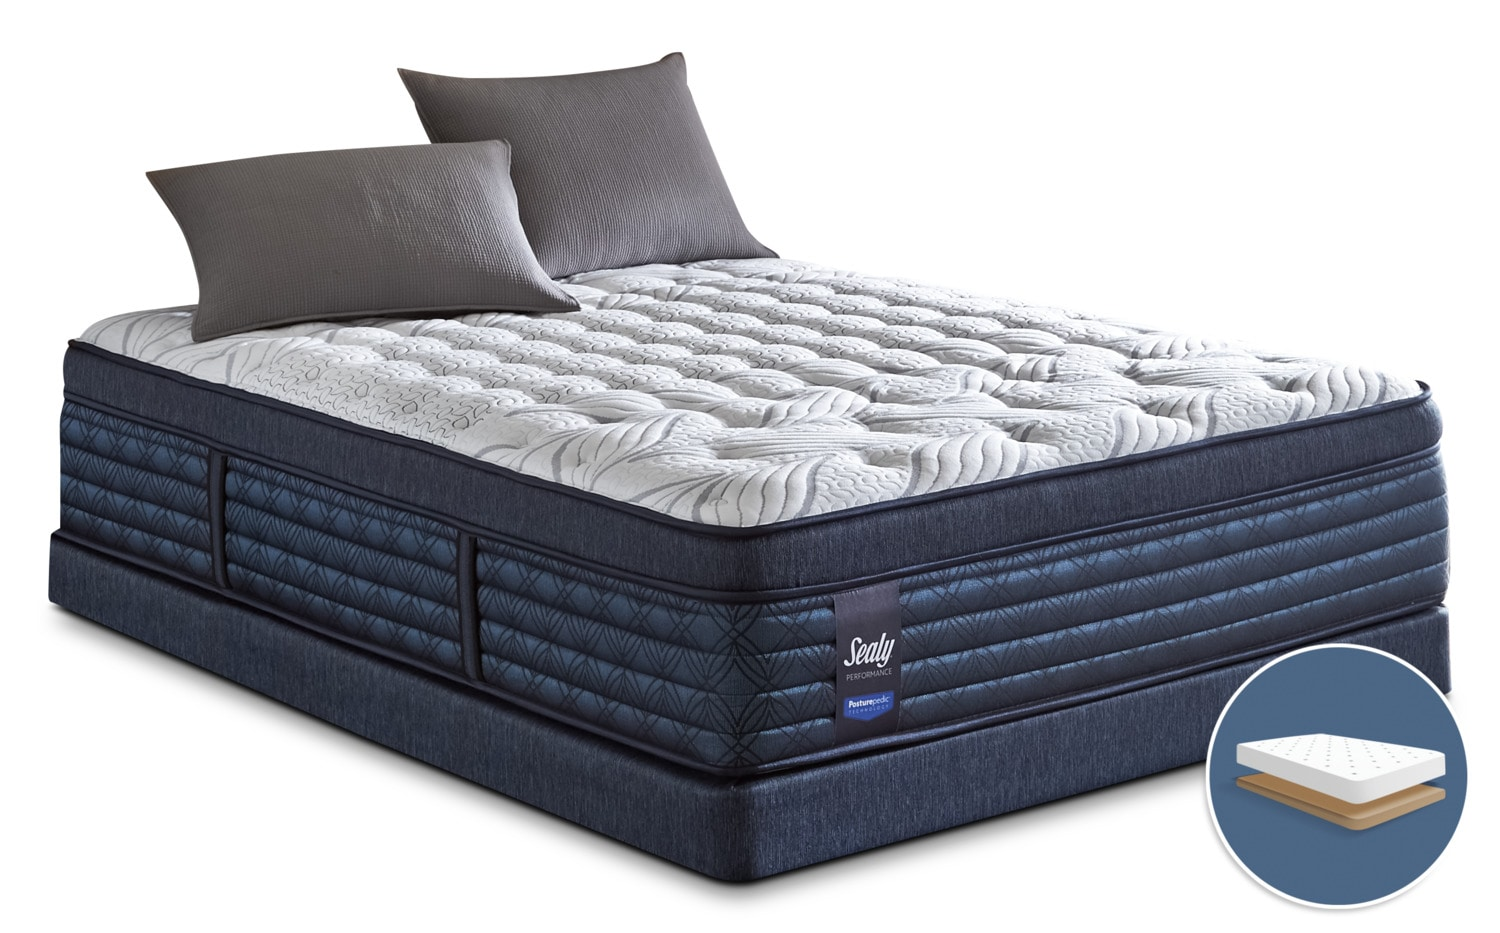 Mattresses and Bedding - Sealy Posturepedic Hockenheim Euro-Top Firm Low-Profile King Mattress Set